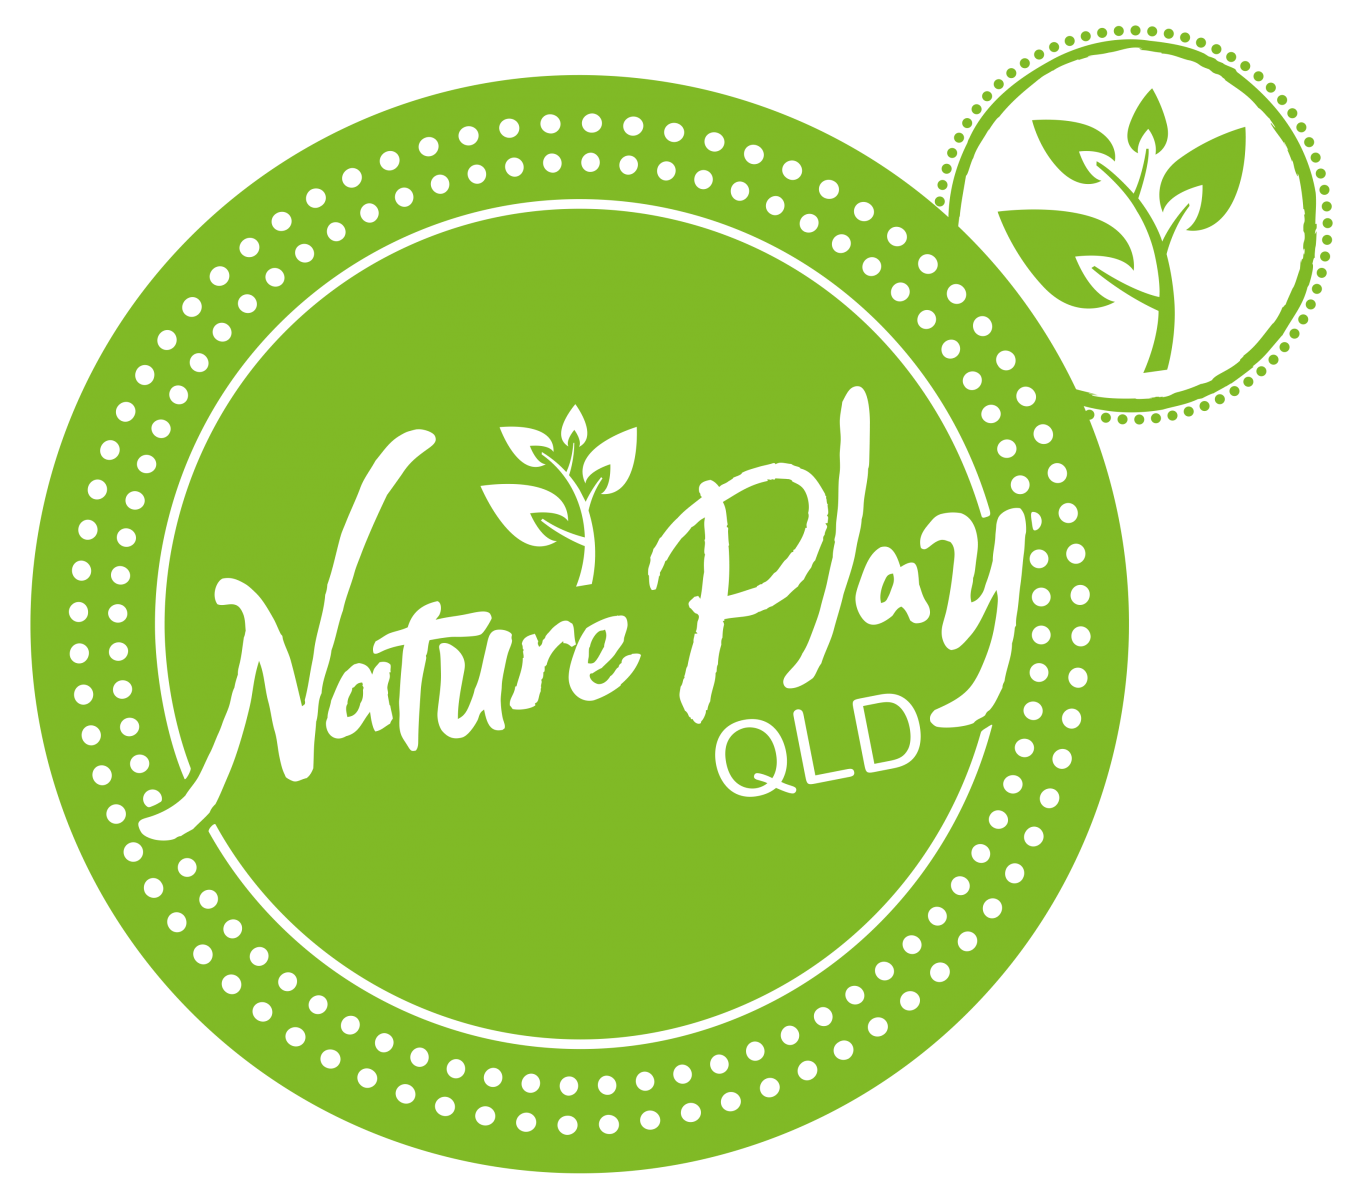 Mud clipart outdoor learning. Benefits of nature play